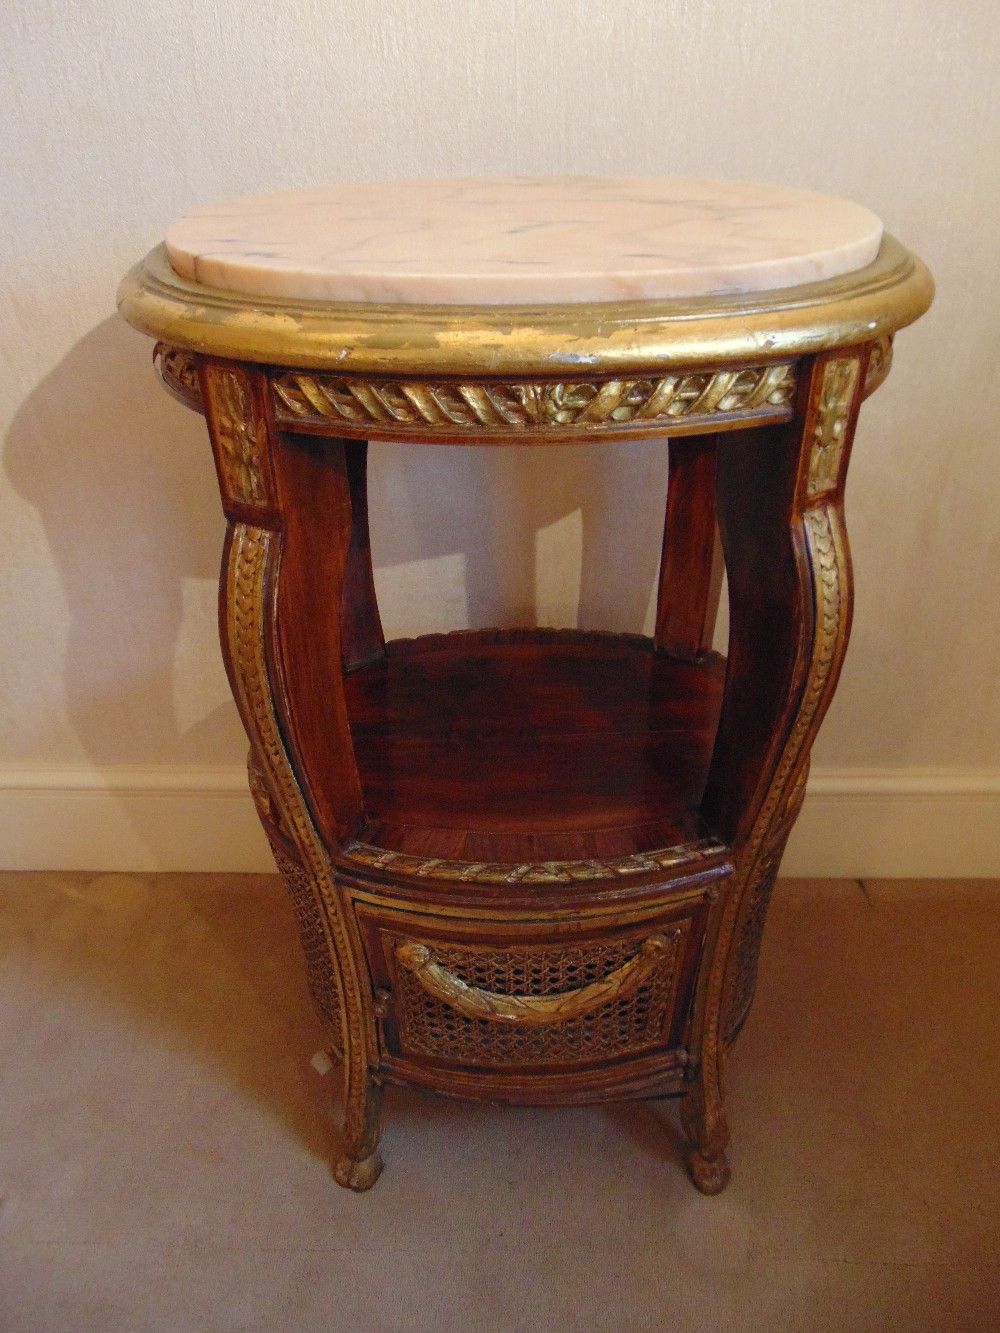 Lot 12 - An oval side table with marble inset top and bergere panels to the sides, A/F